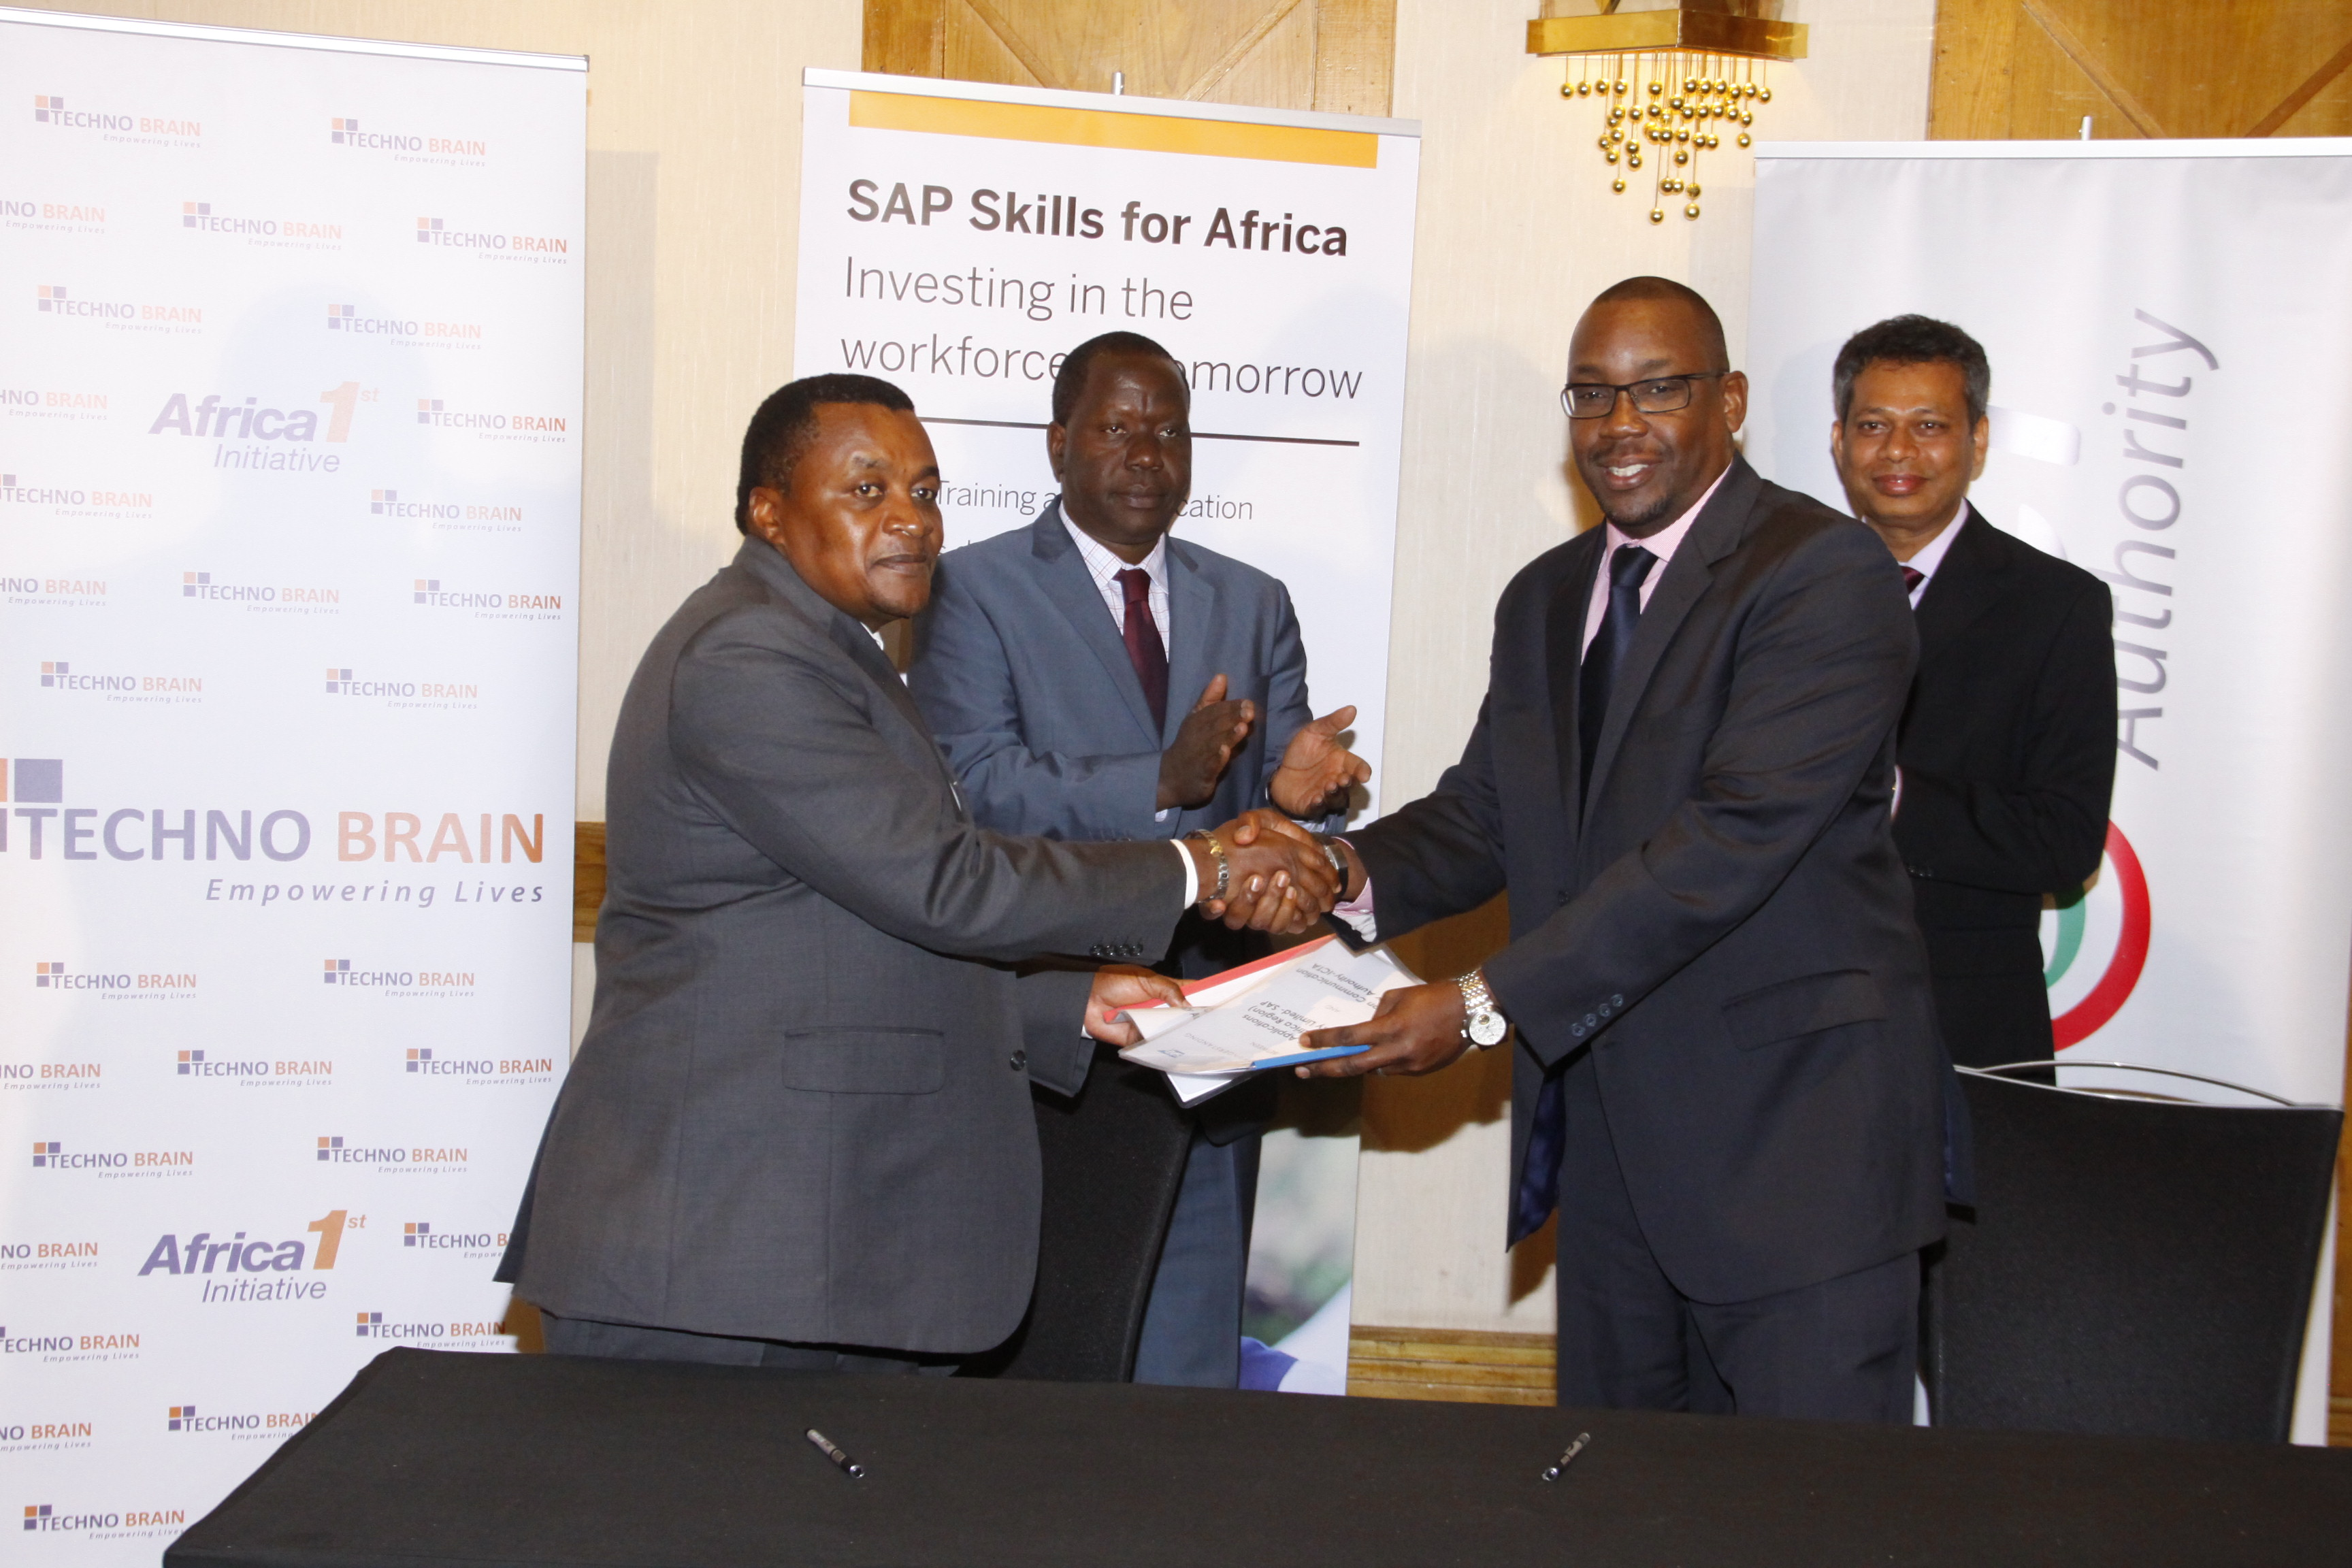 MOU Signing ceremony, SAP Skills for Africa Program, ICT Authority & SAP